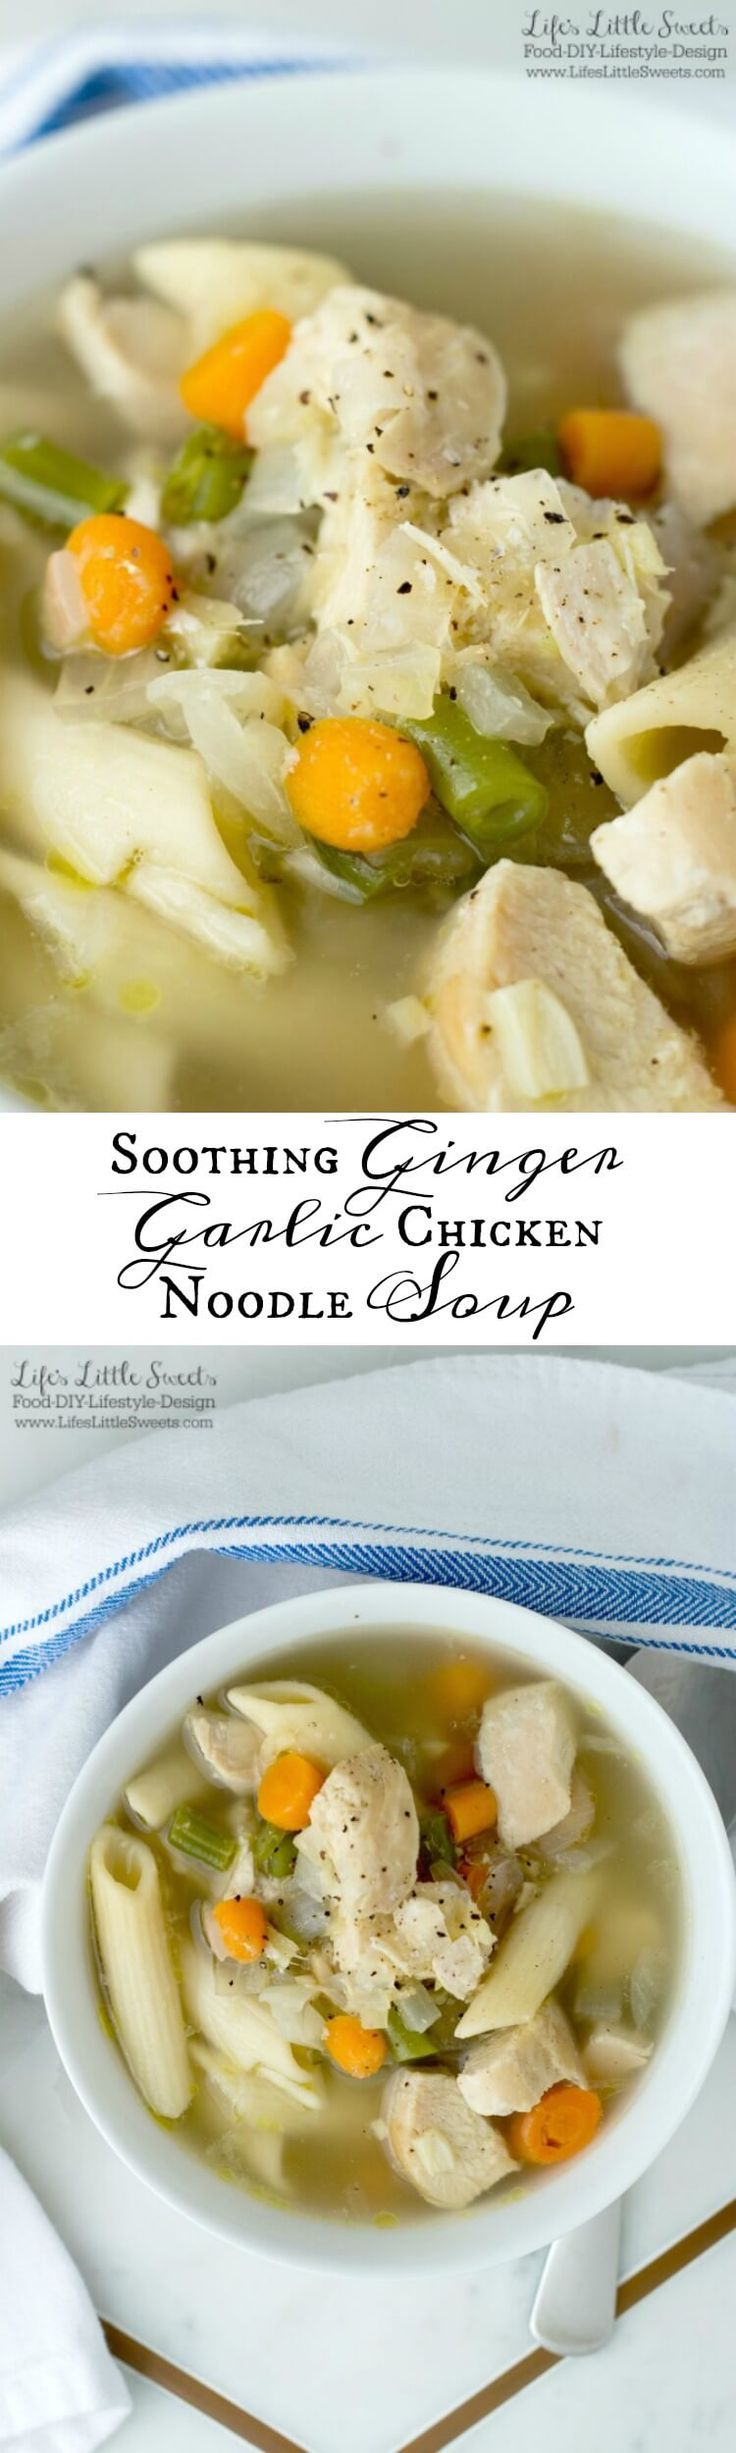 Soothing Ginger Garlic Chicken Noodle Soup www.LifesLittleSweets.com